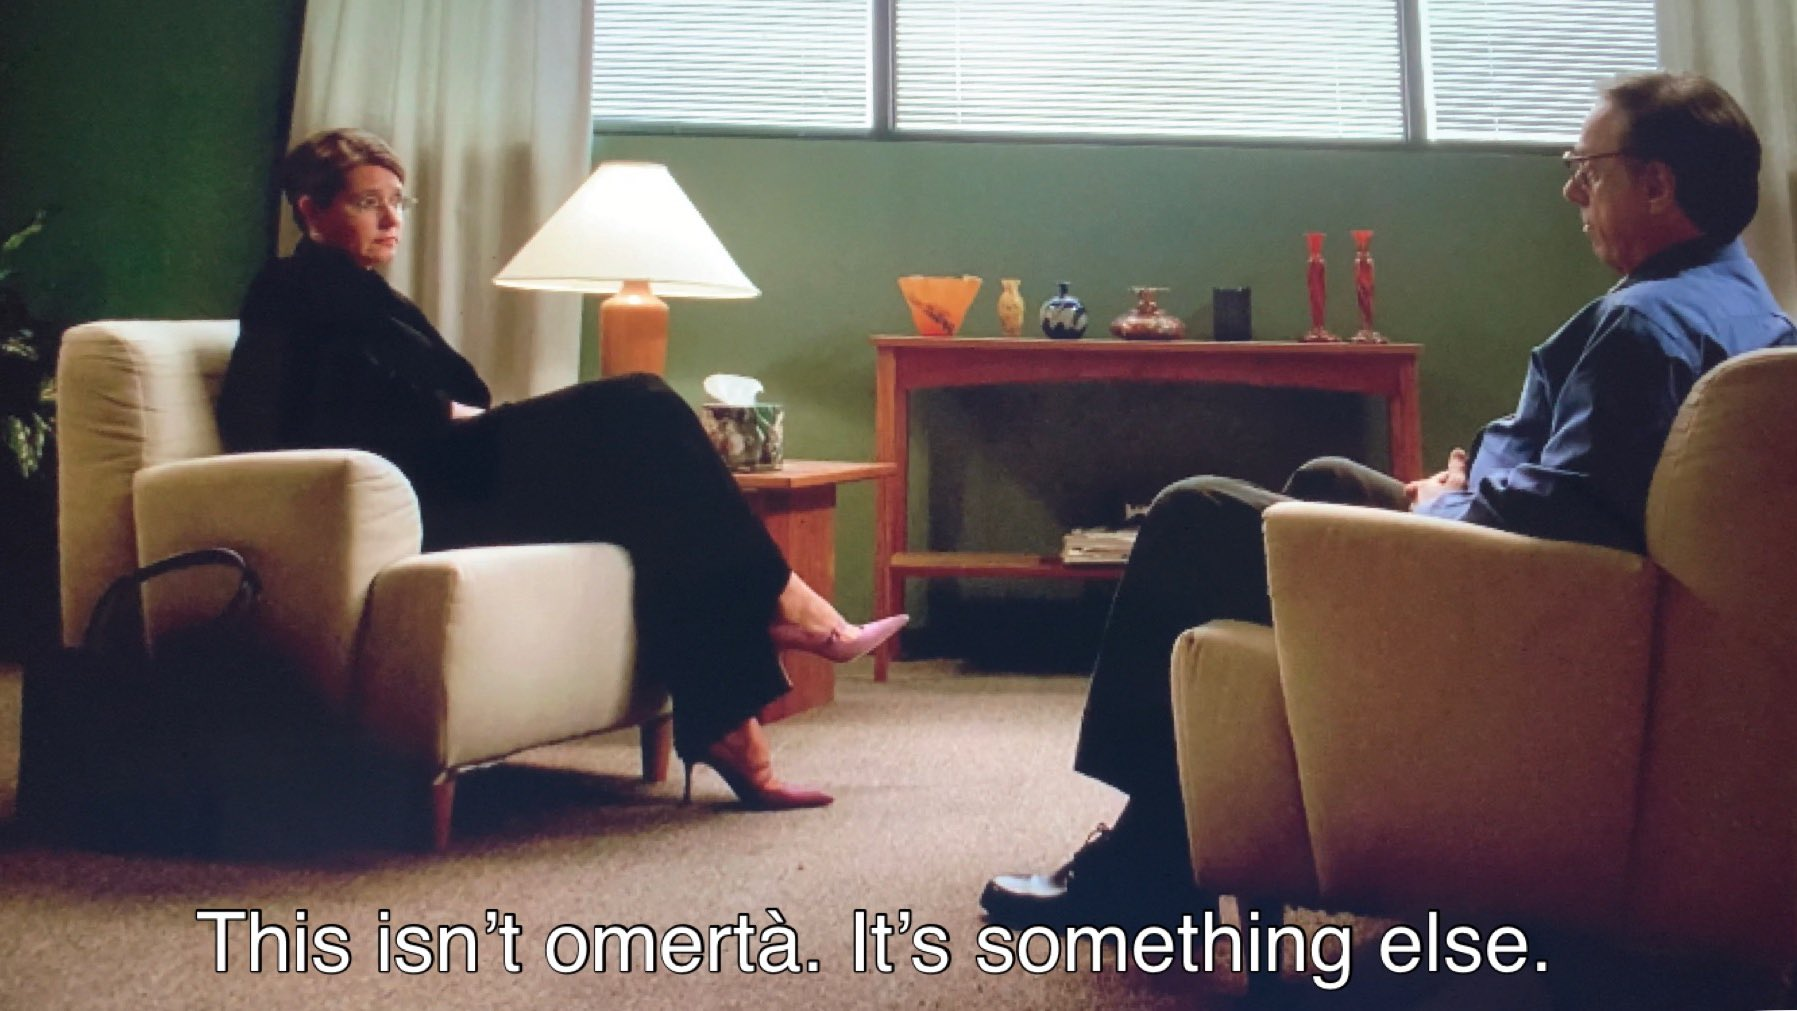 Dr. Melfi is talking to Dr. Elliot Kupferberg about Tony Soprano's mental health.